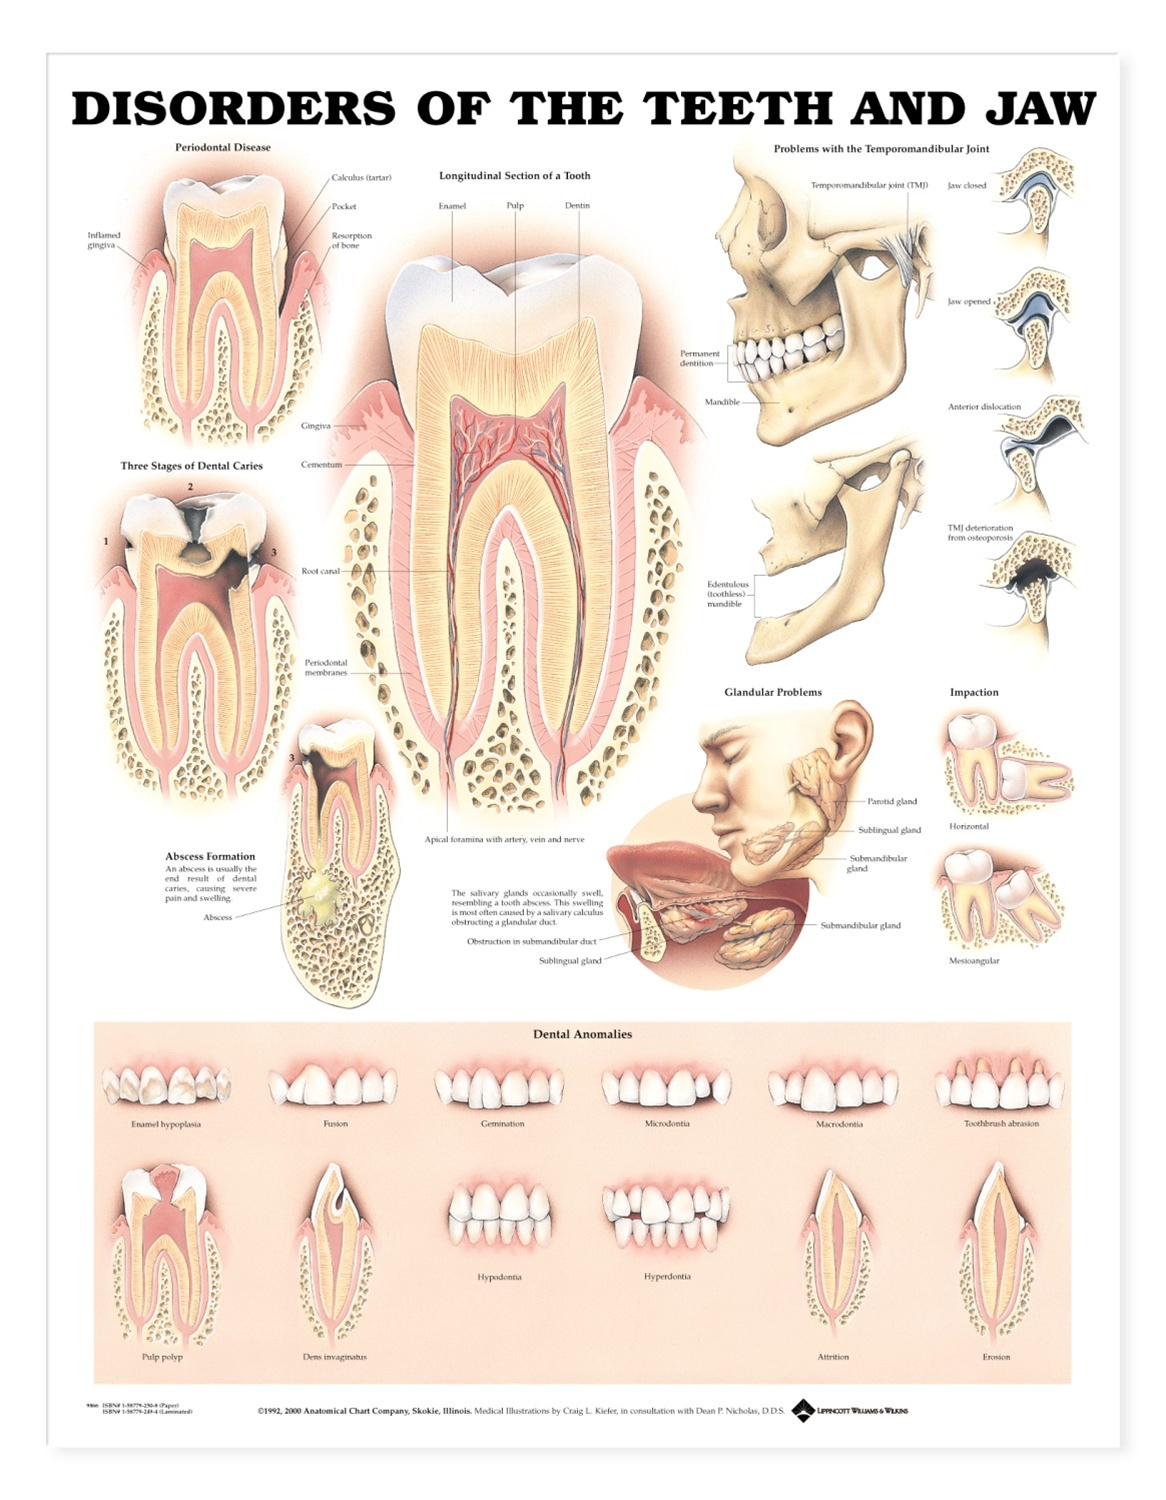 Disorders of the Teeth and Jaw Anatomical Chart - Anatomy Models and ...